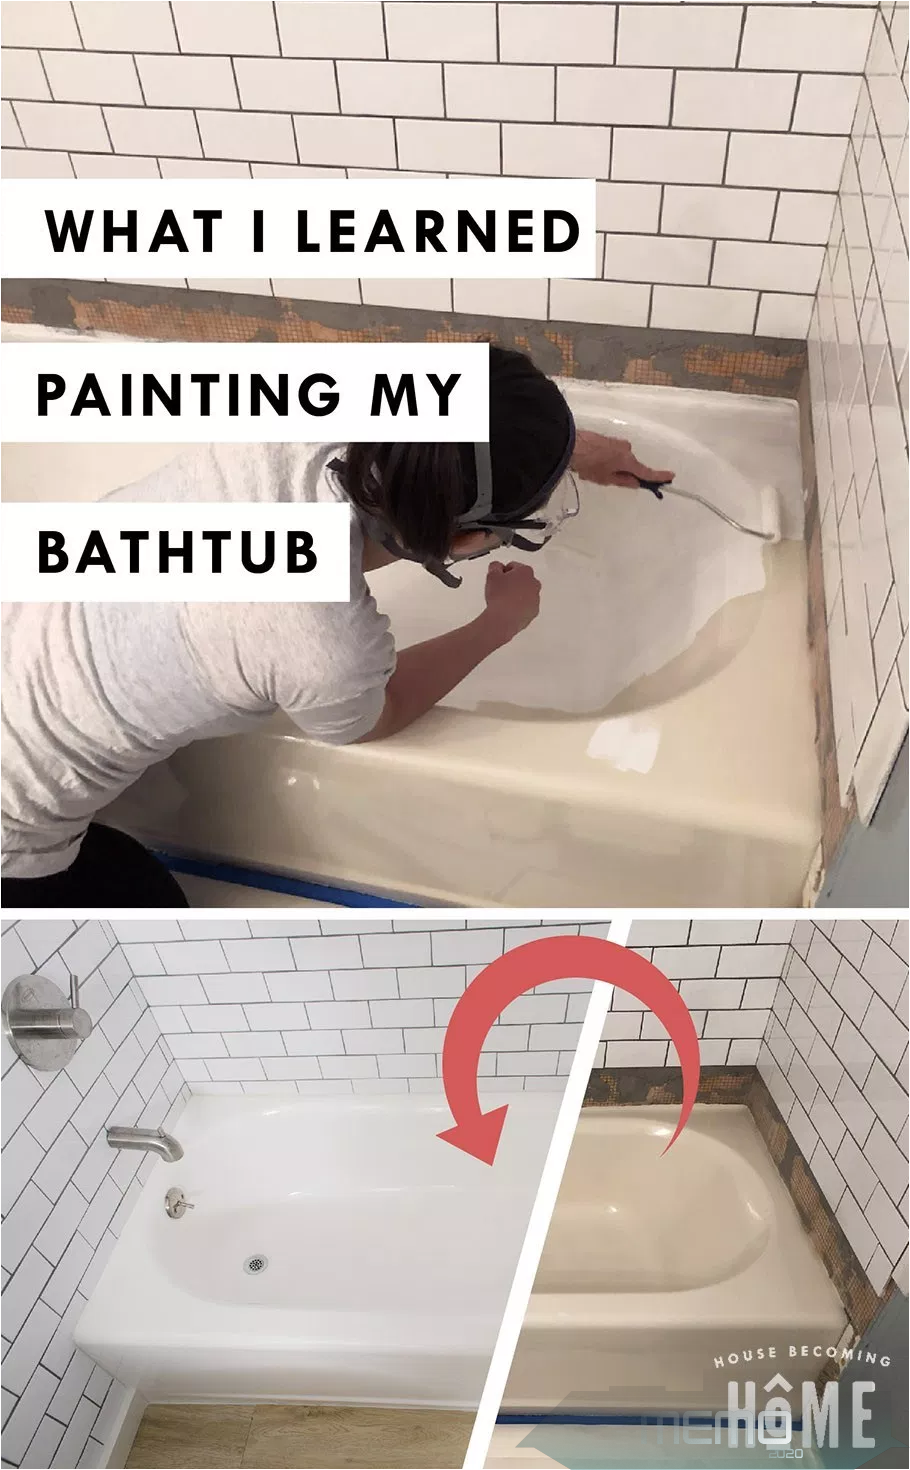 Jun 7 2019 How To Paint An Outdated Bathtub With An Affordable Refinishing Kit Review Of Rustole In 2020 Selbstgebaute Badewanne Badewanne Streichen Badezimmer Diy